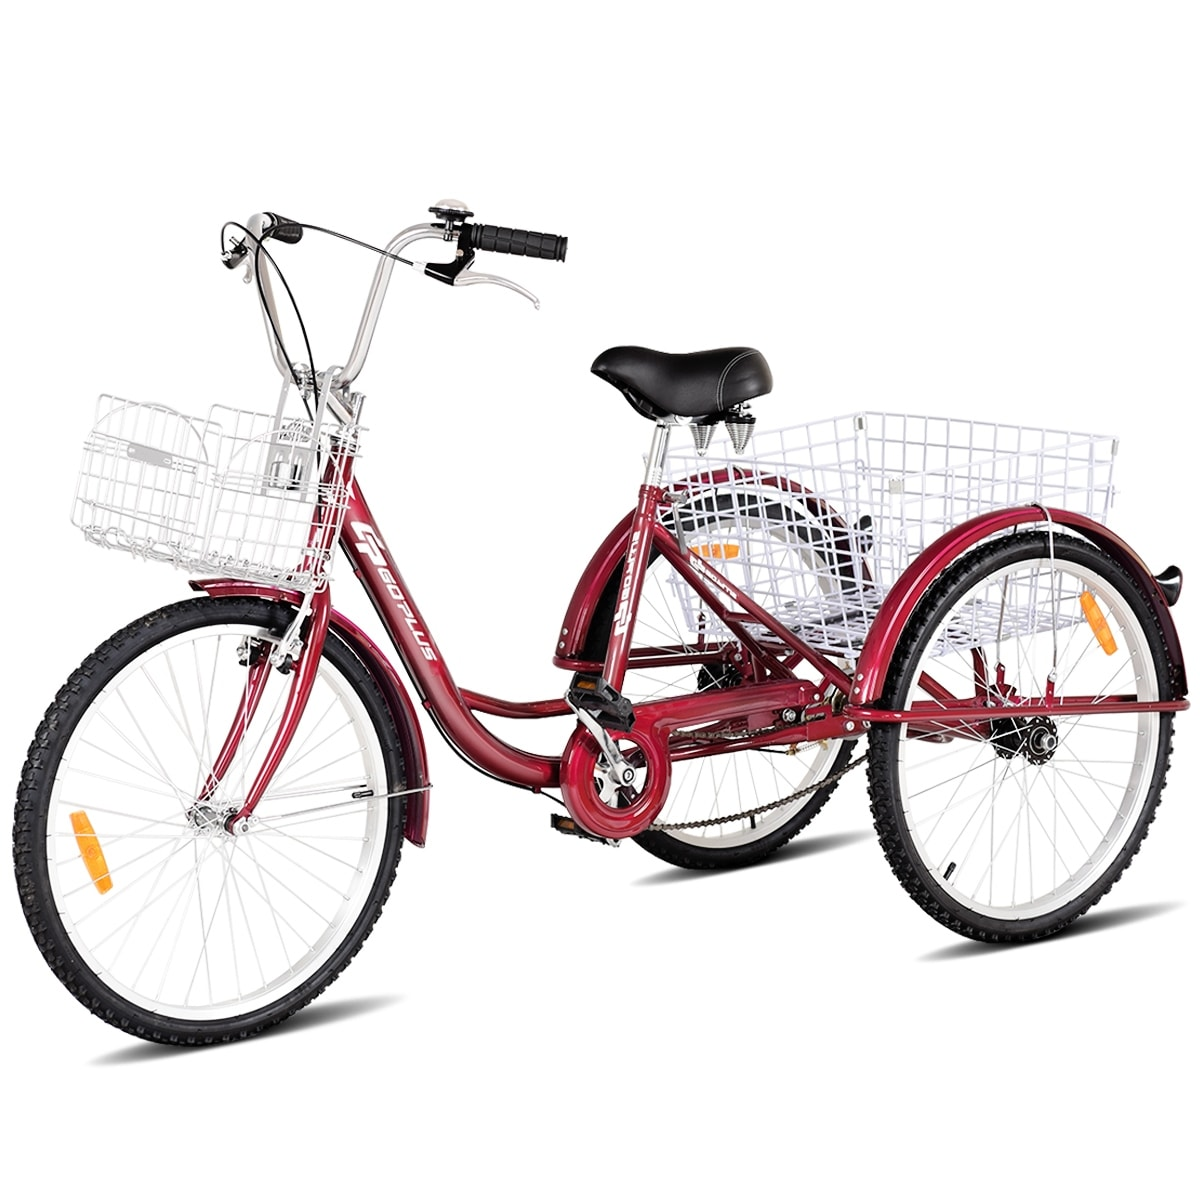 34a8b7c31e2 Shop Goplus 24'' Single Speed 3-wheel Bicycle Adult Tricycle Seat Height  Adjustable w/ Bell - Free Shipping Today - Overstock - 22649846